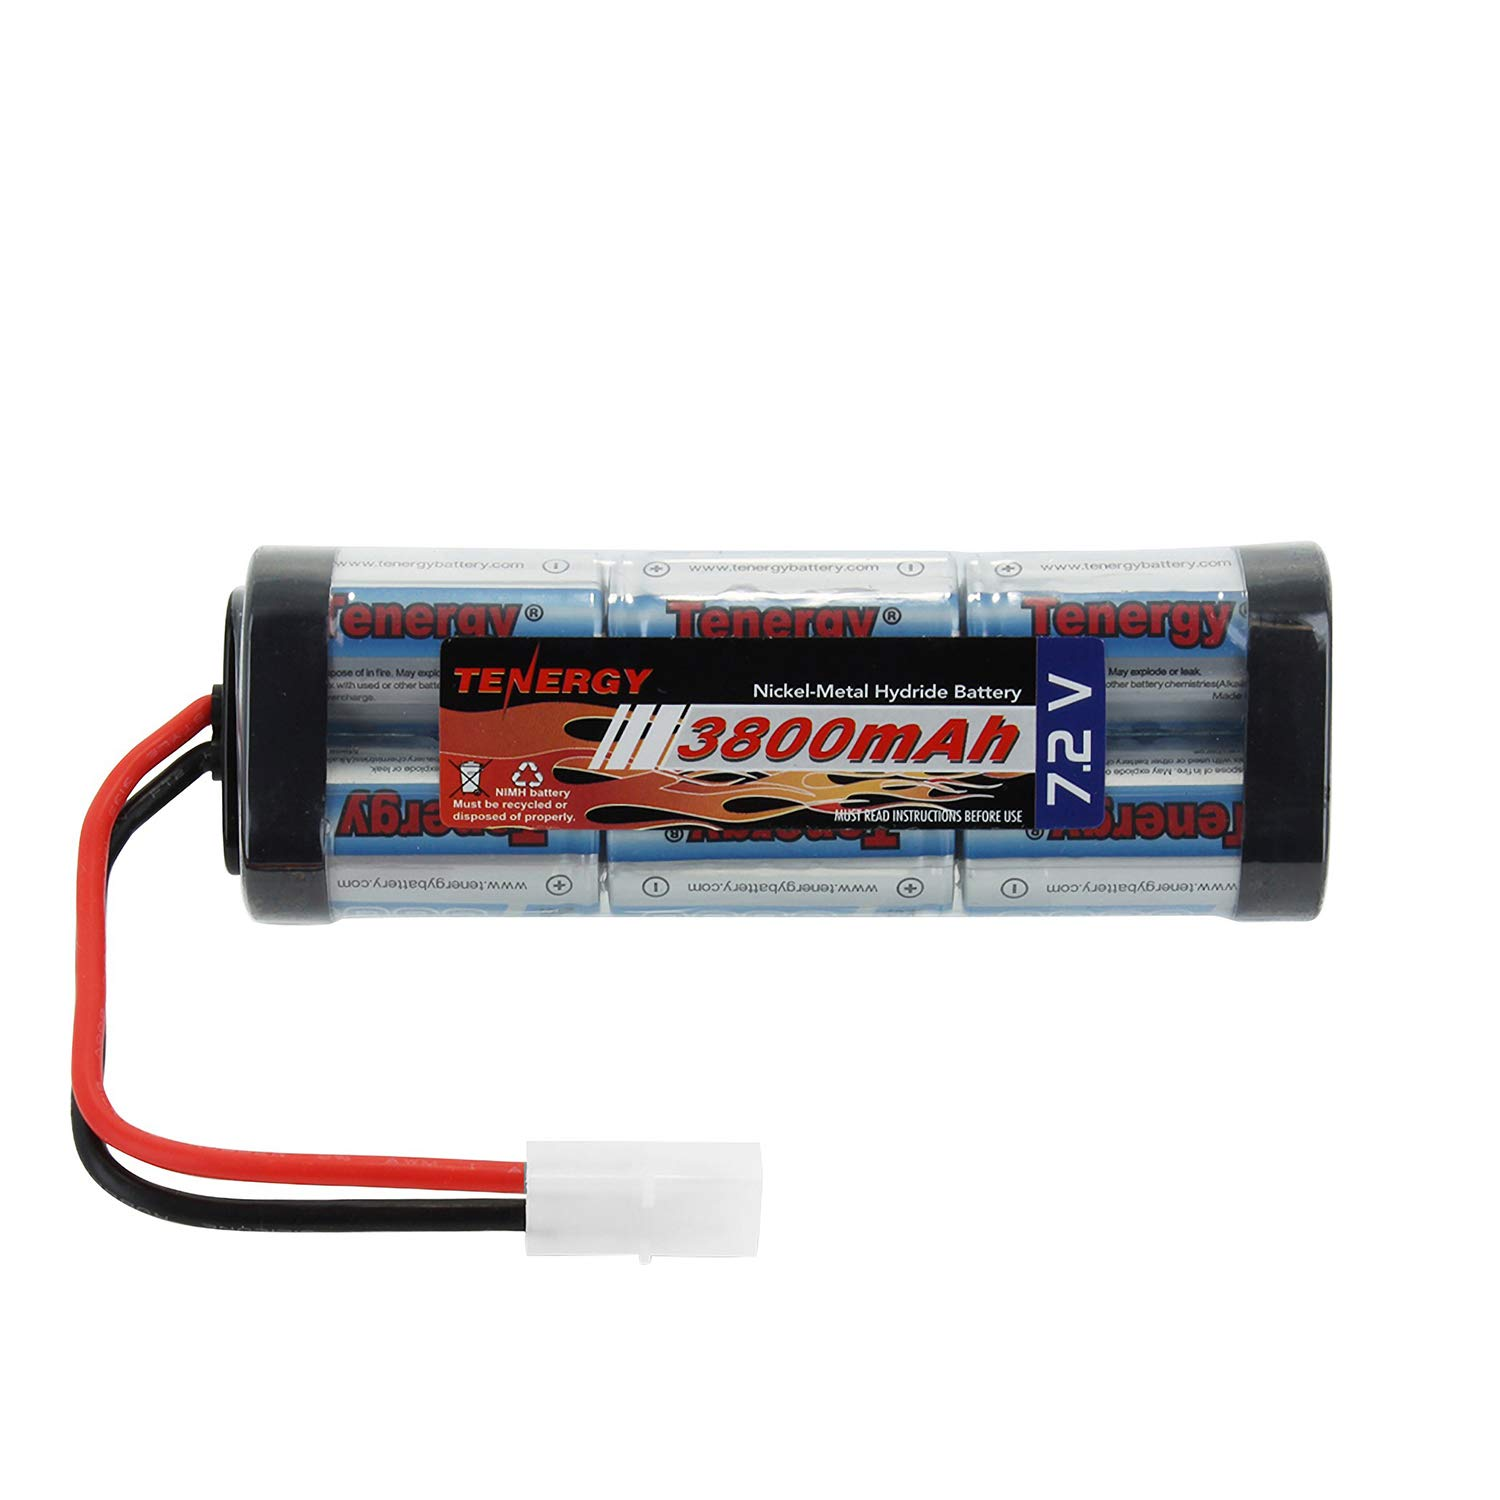 Tenergy 72v Battery Pack For Rc Car High Capacity 6 How To Recycle Gold From Circuit Boards Ehow Uk Cell 3800mah Nimh Flat Replacement Hobby With Standard Tamiya